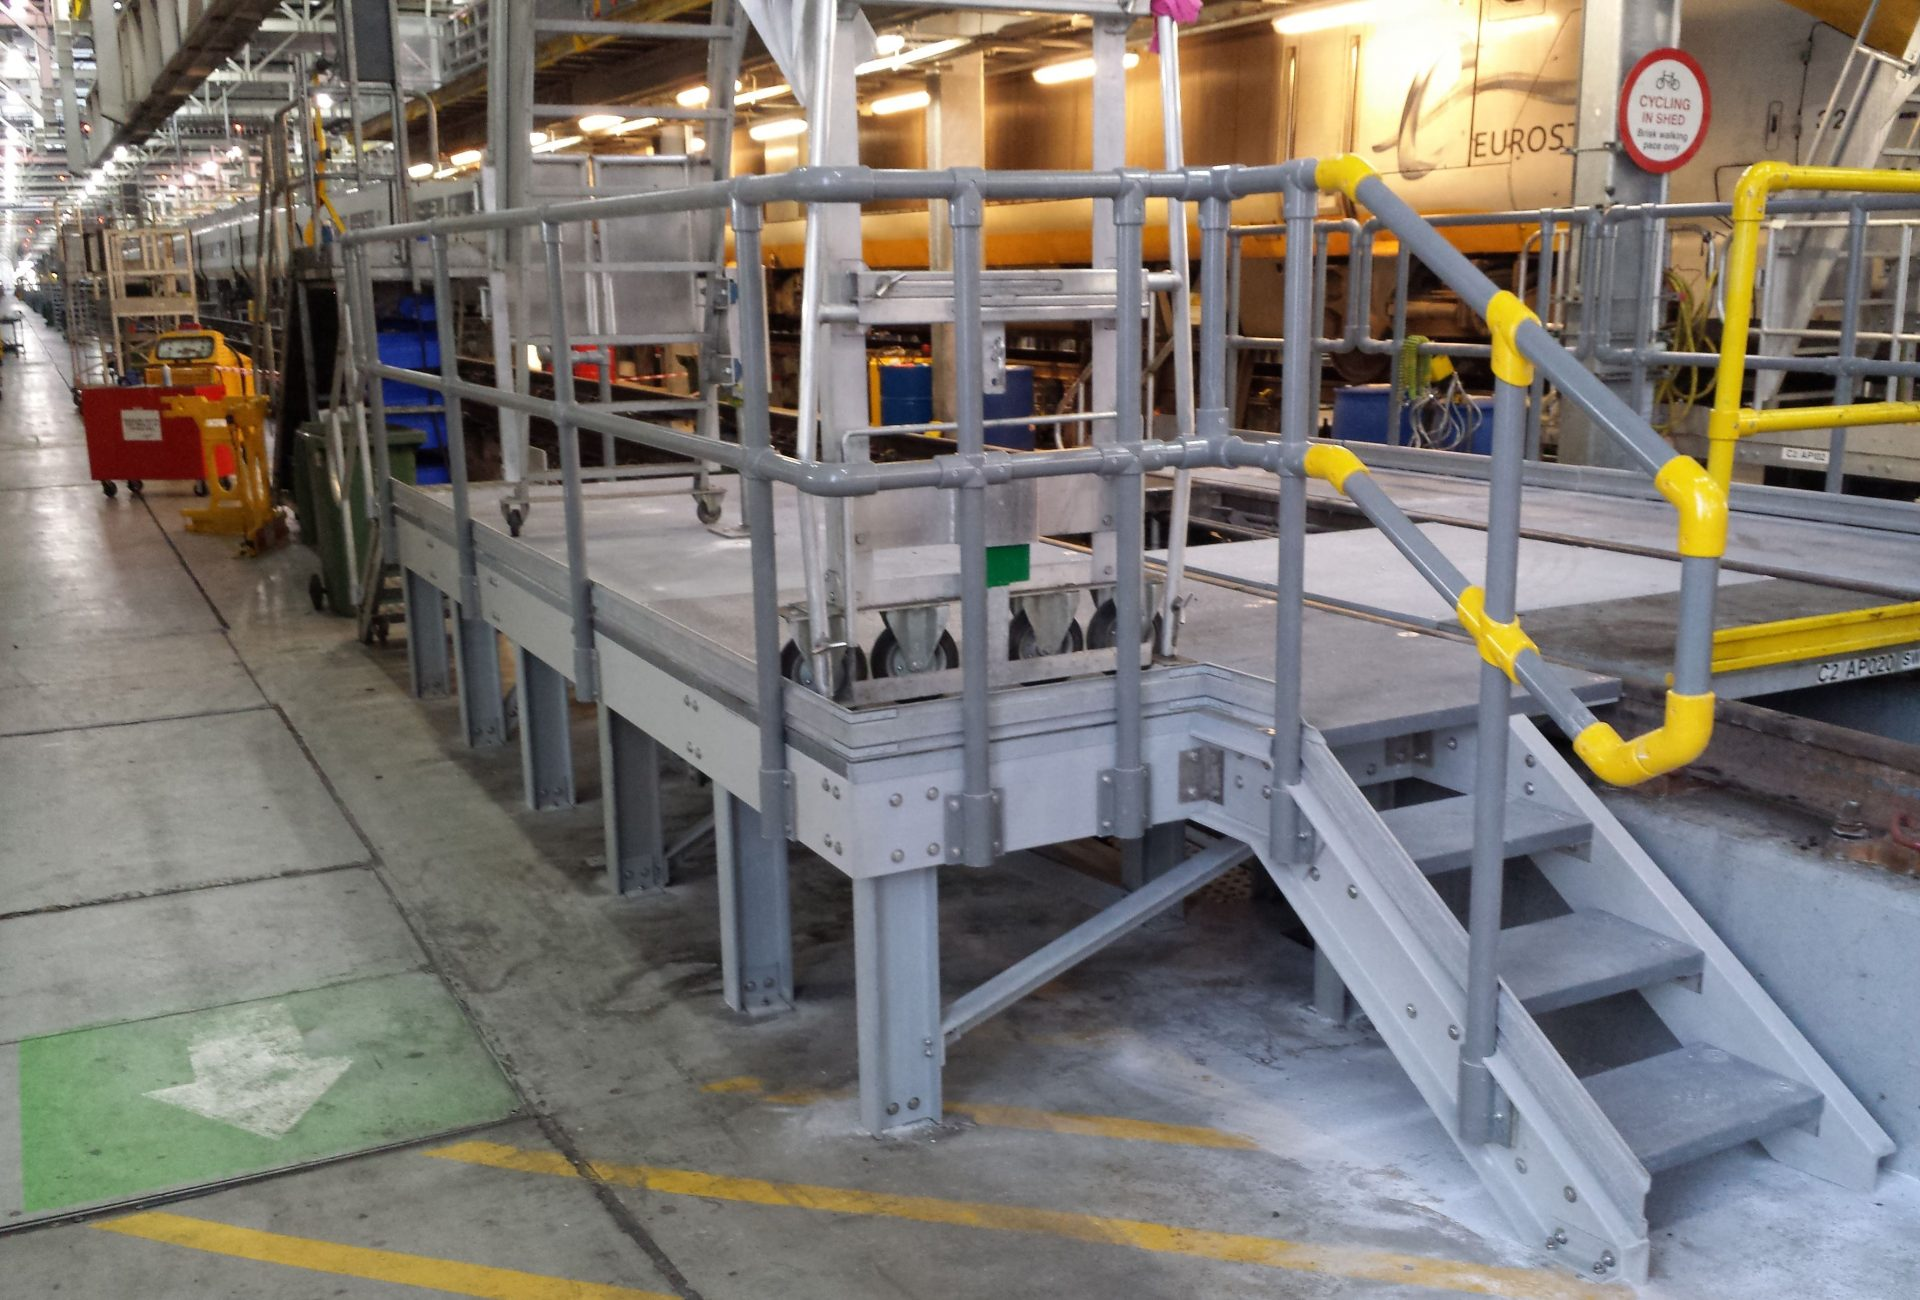 Glass fibre GRP composite fixed work platform with guardrail and step access